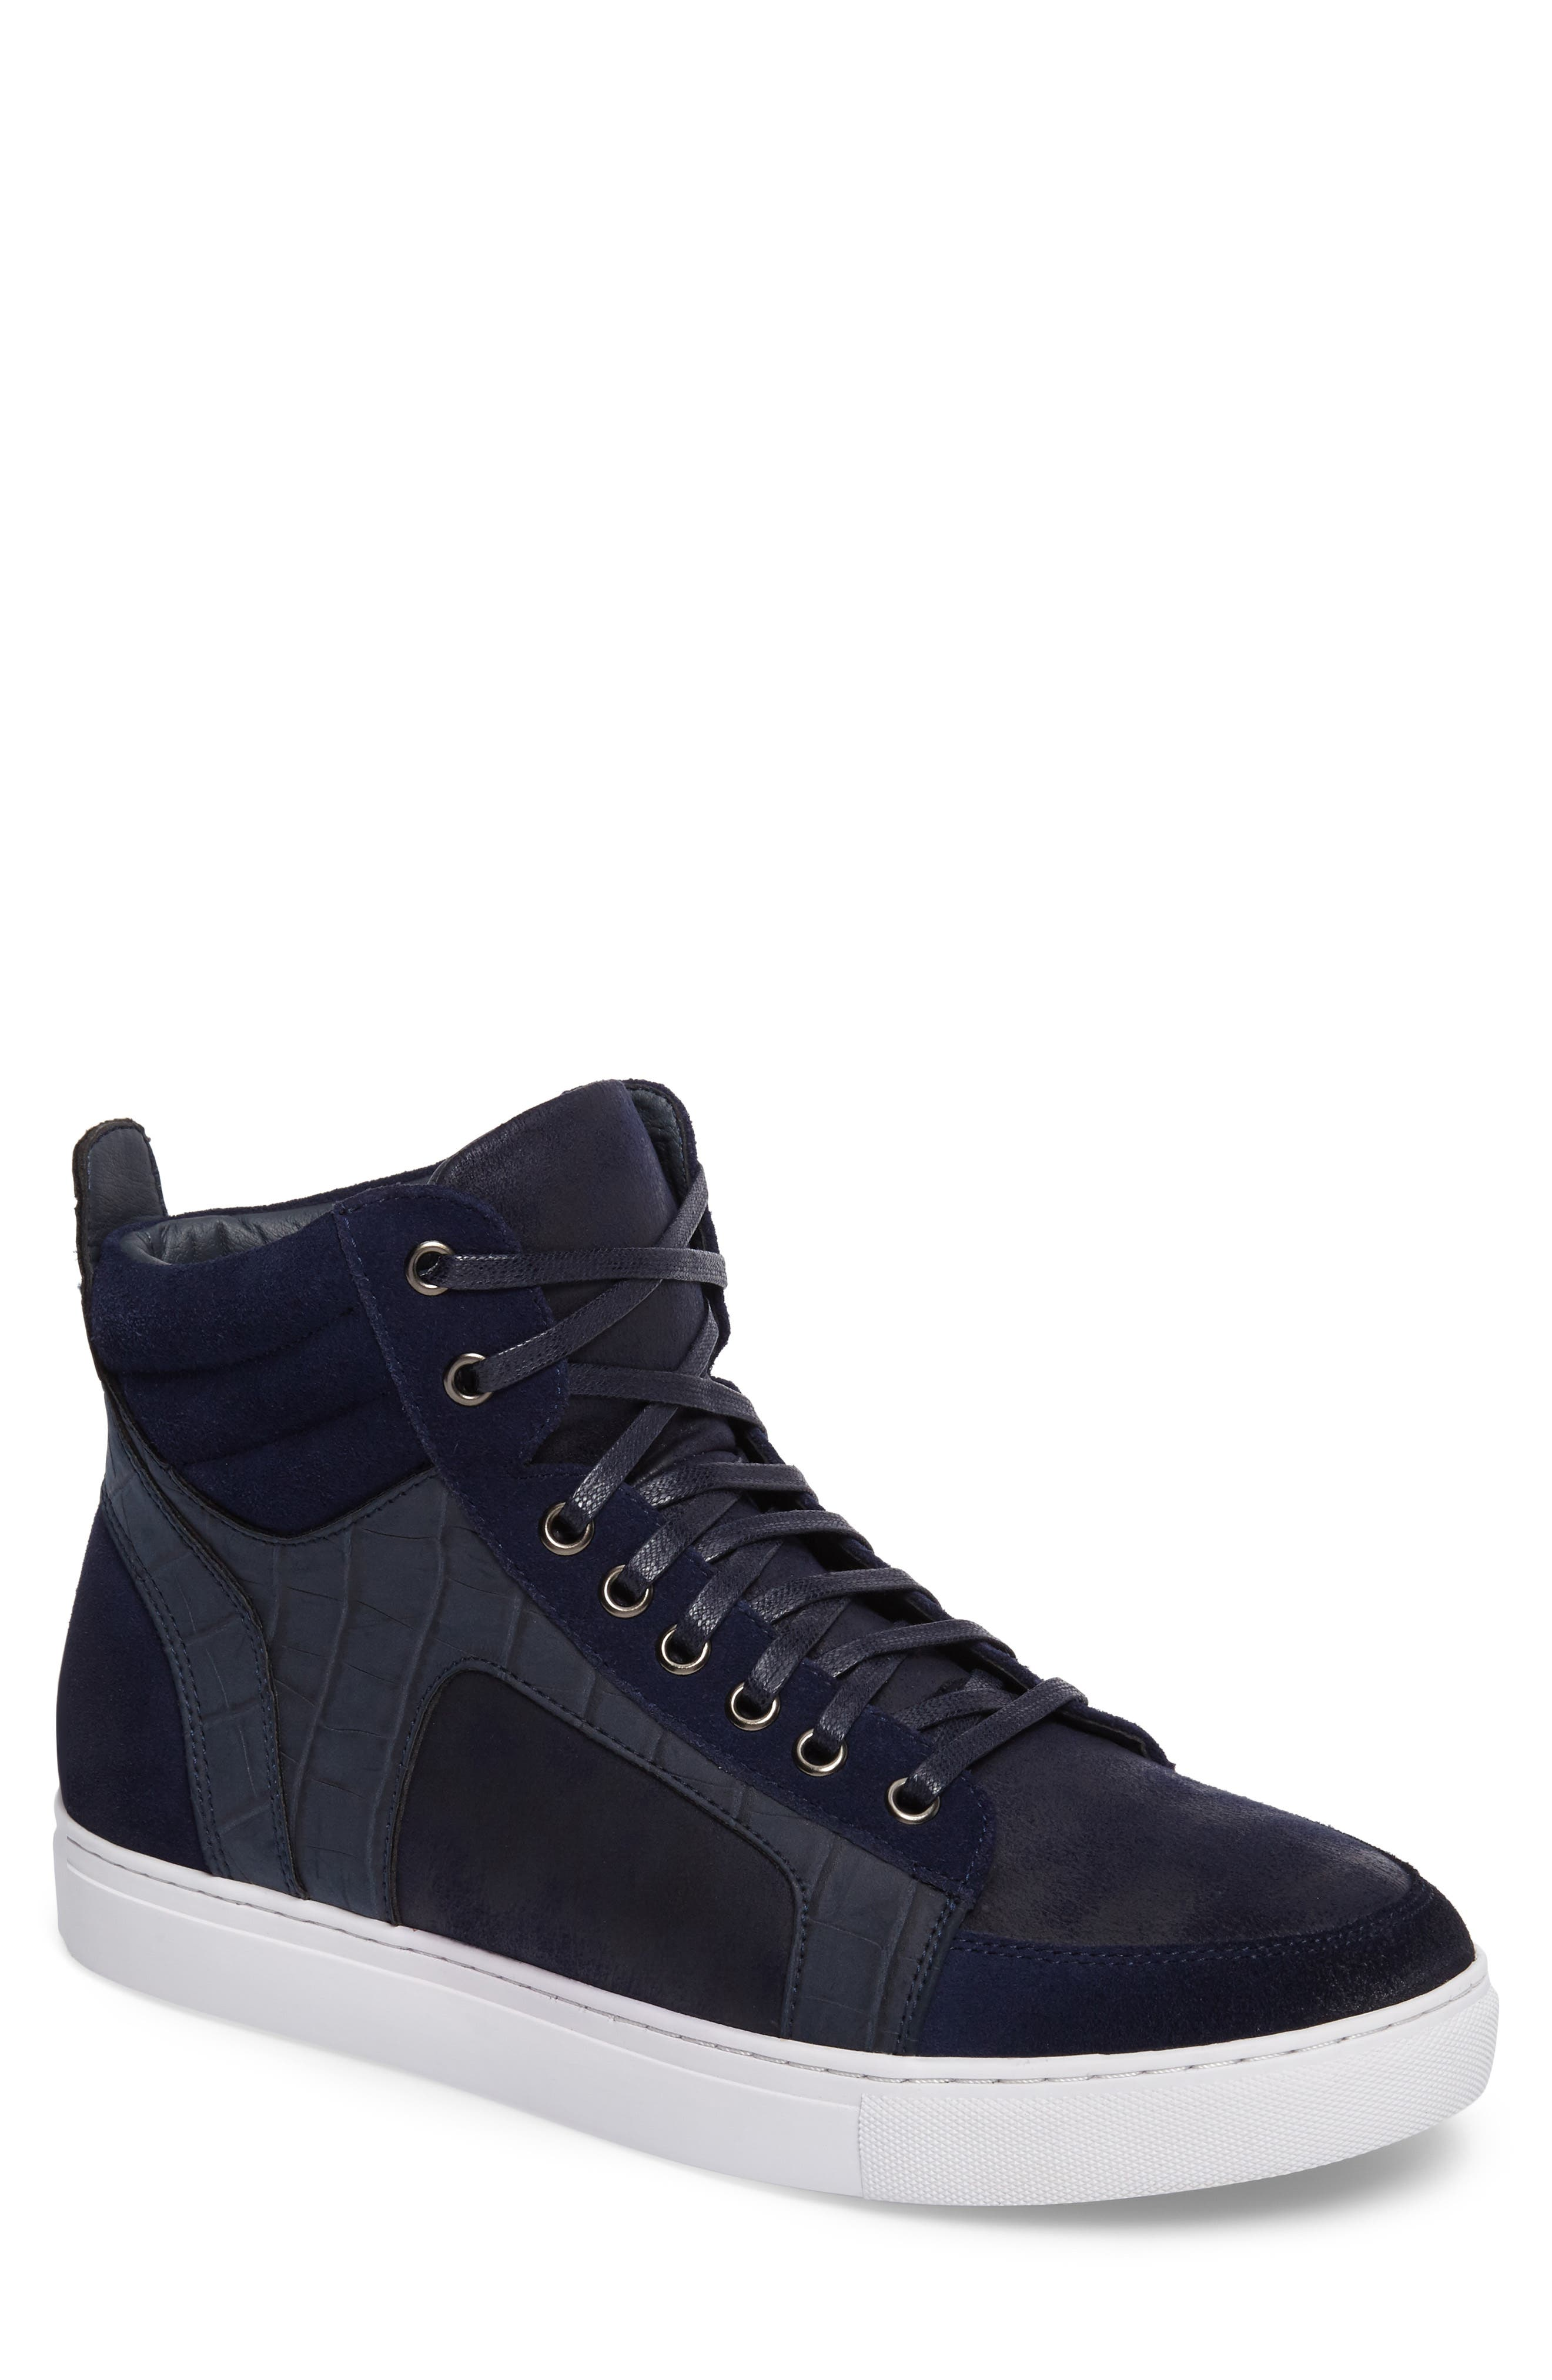 Makin Sneaker,                             Main thumbnail 1, color,                             Navy Suede